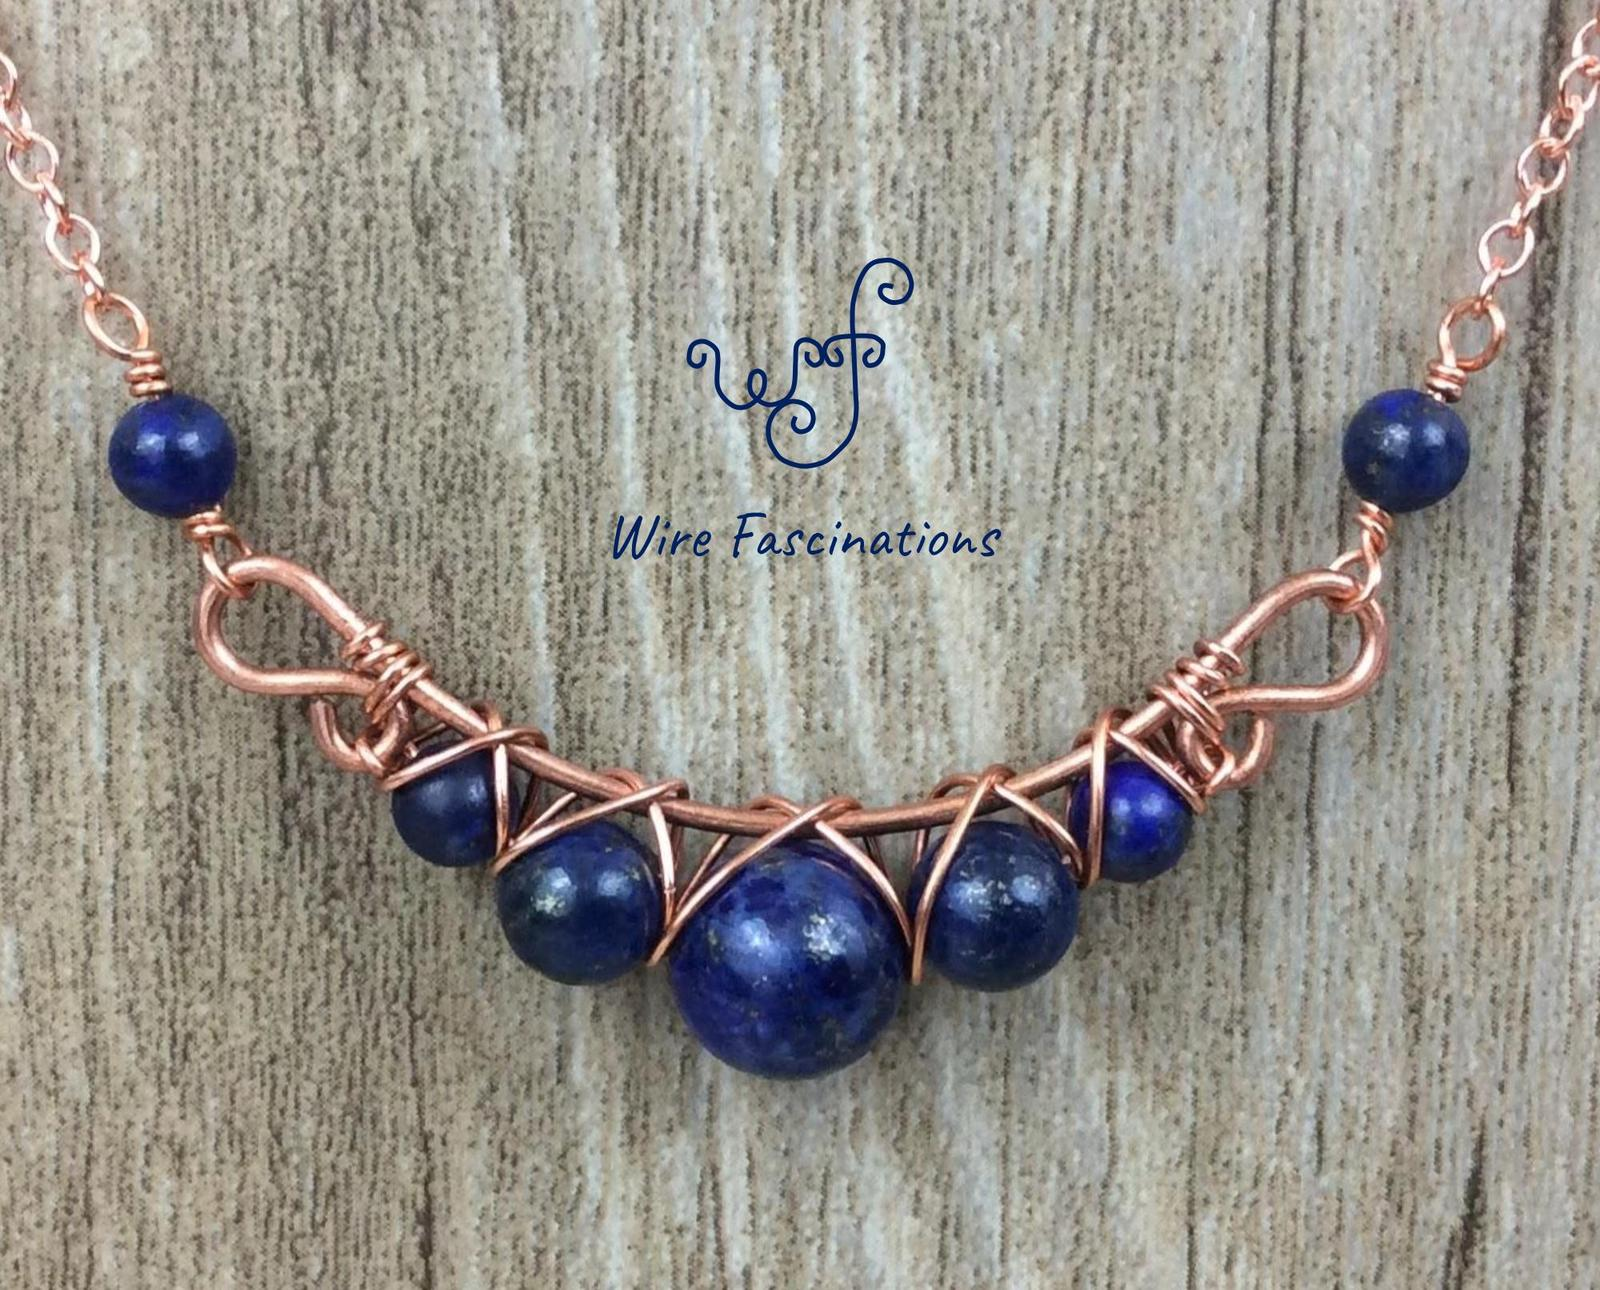 Handmade lapis lazuli necklace: criss cross copper wire wrapped